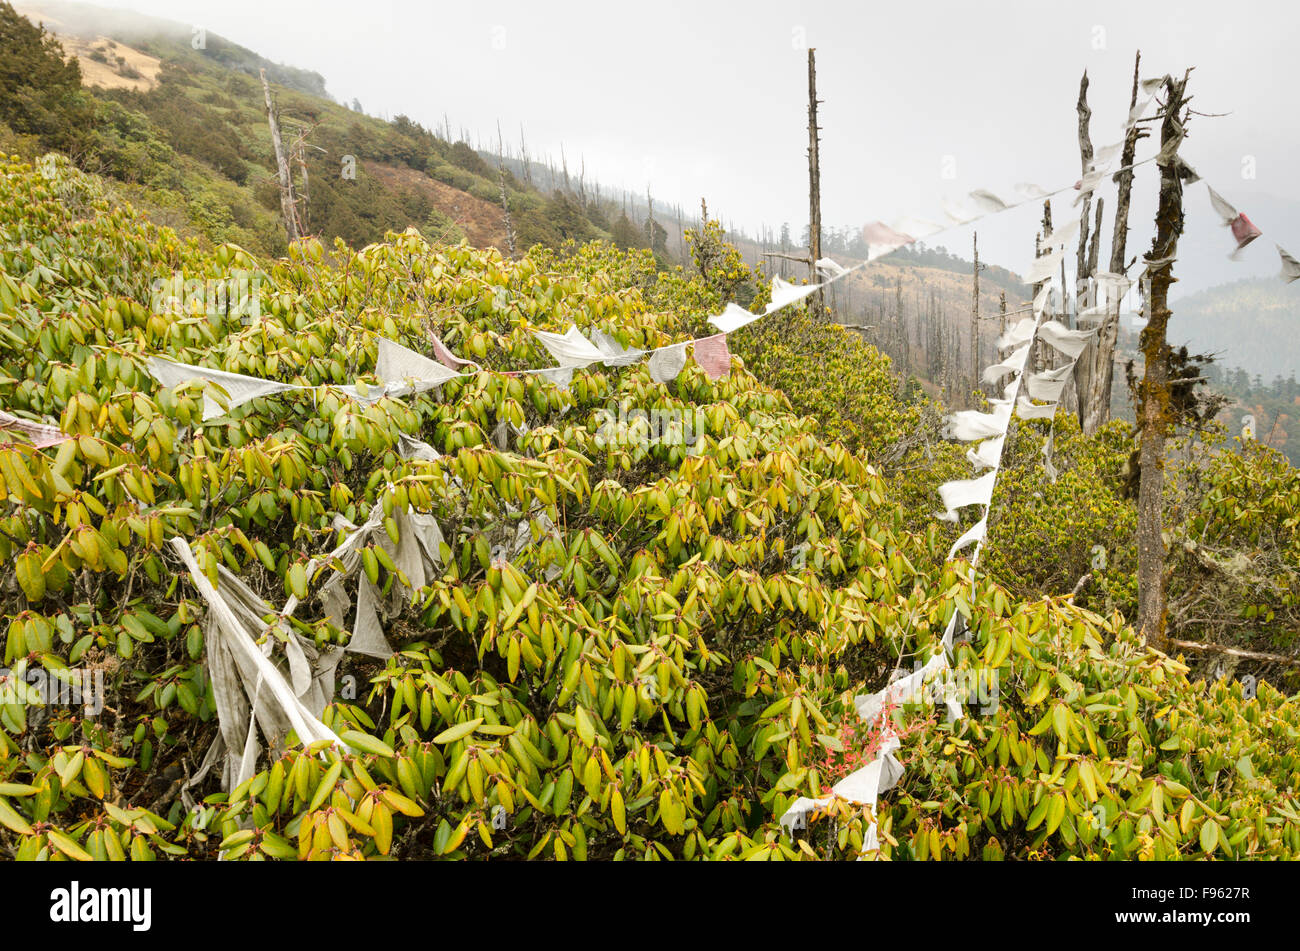 Prayer flags and rhododendrons near Chele Pass, Bhutan - Stock Image